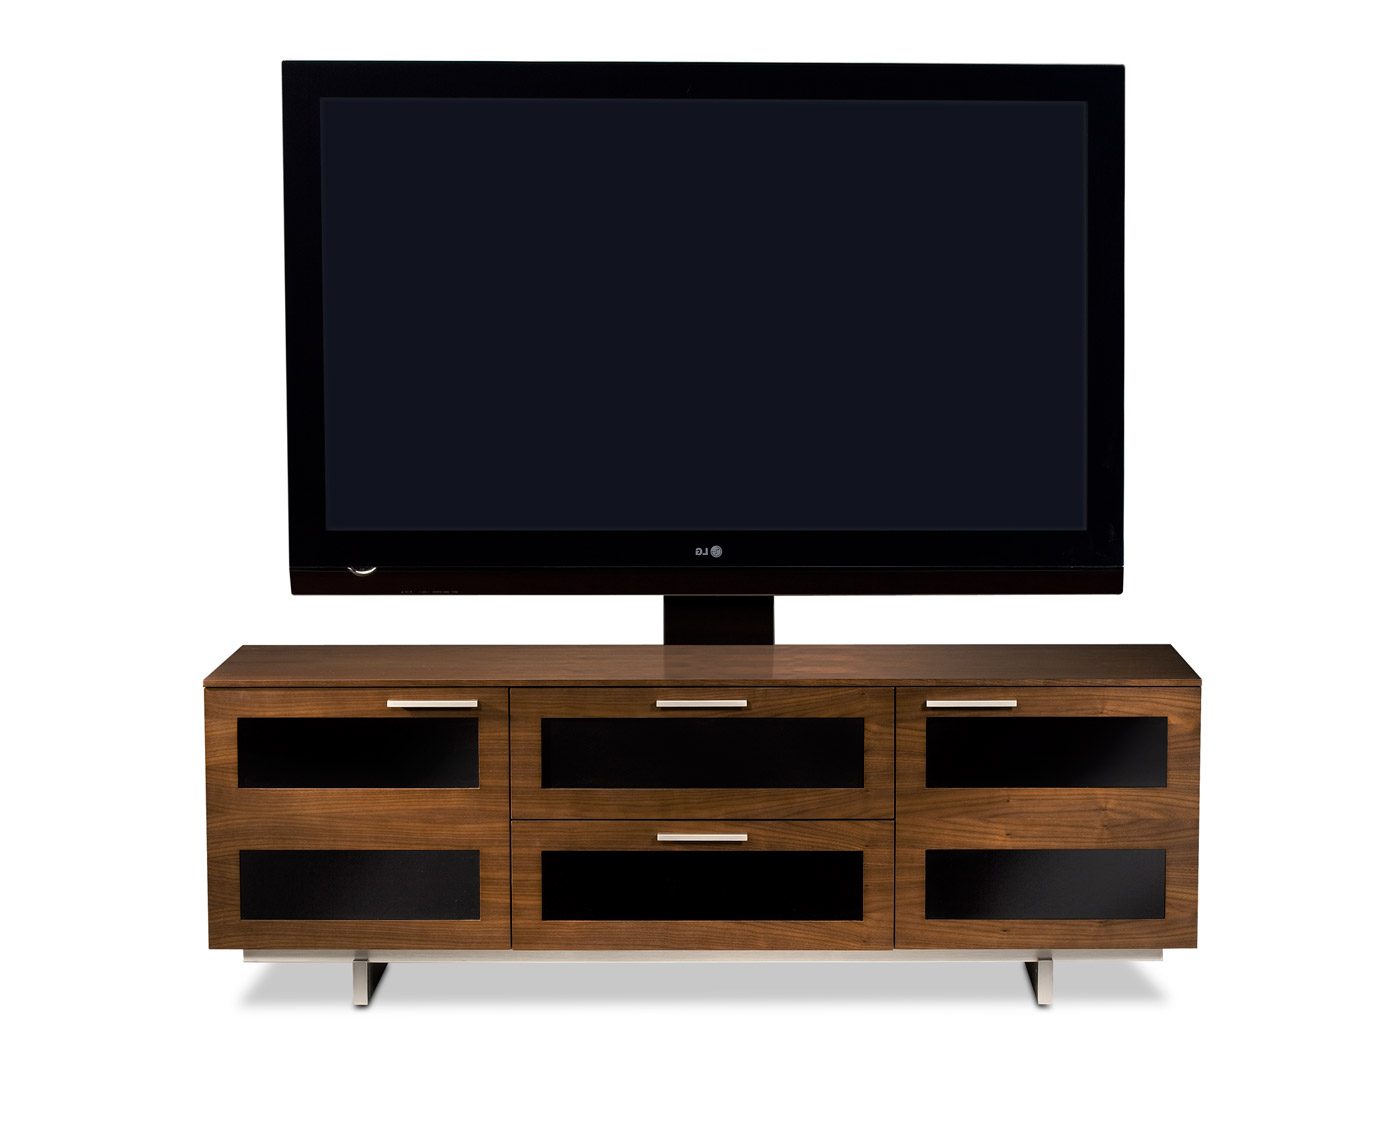 Avion Ii 8927 Tv Stand – Bdi Designer Tv Stands And Cabinets For Regarding Most Recently Released Tv Stands And Cabinets (Gallery 3 of 20)